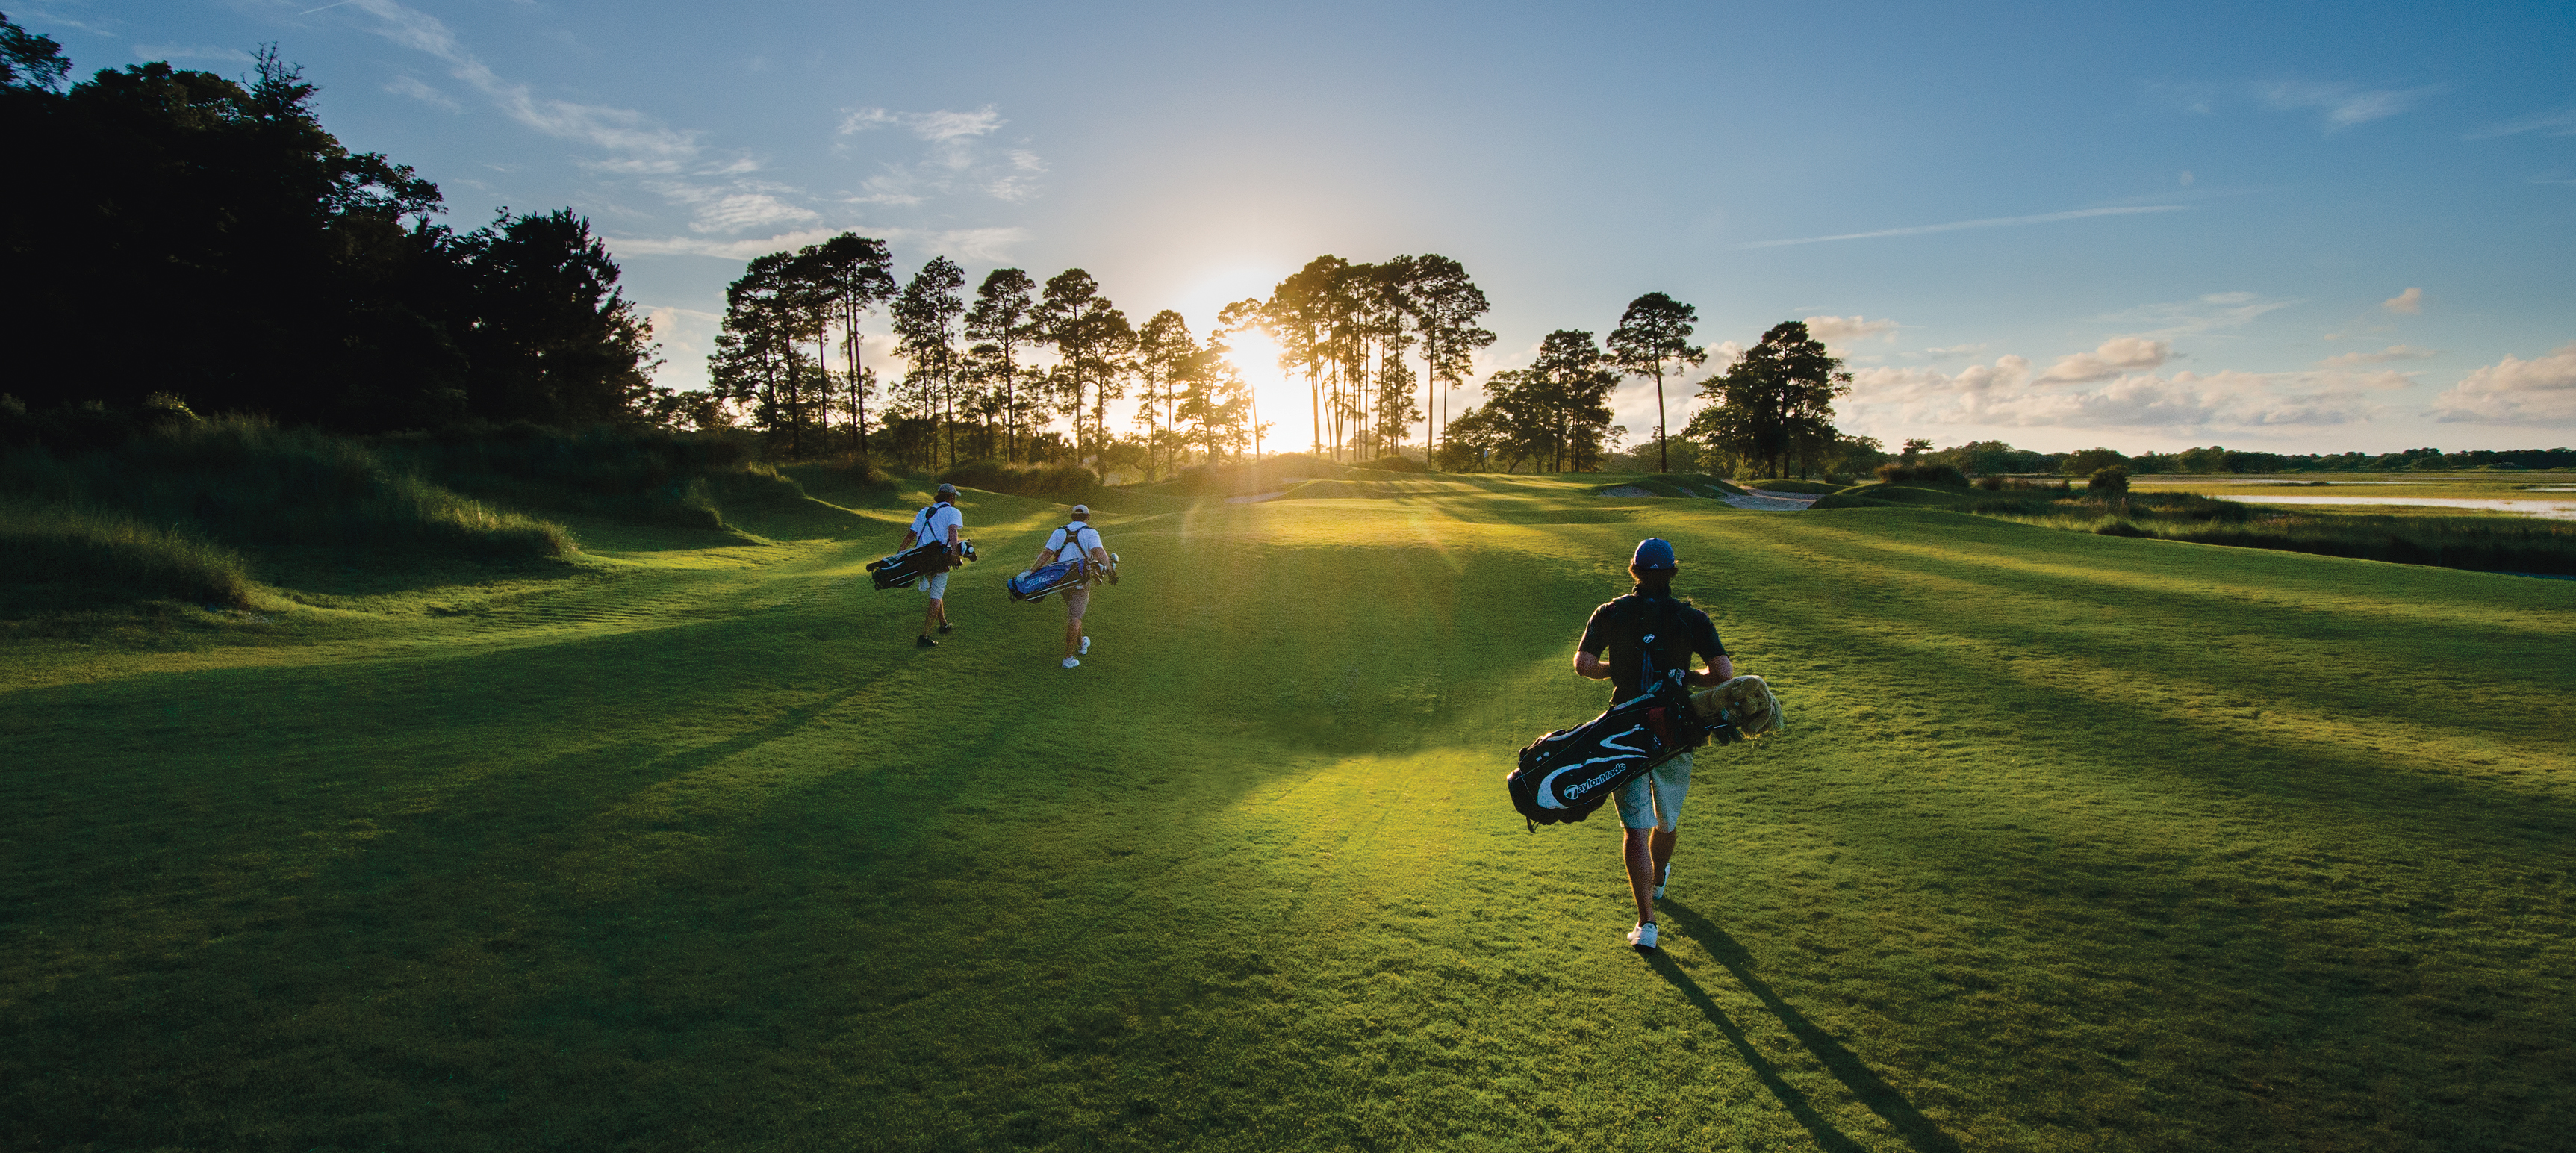 PGA Championship: See You in South Carolina